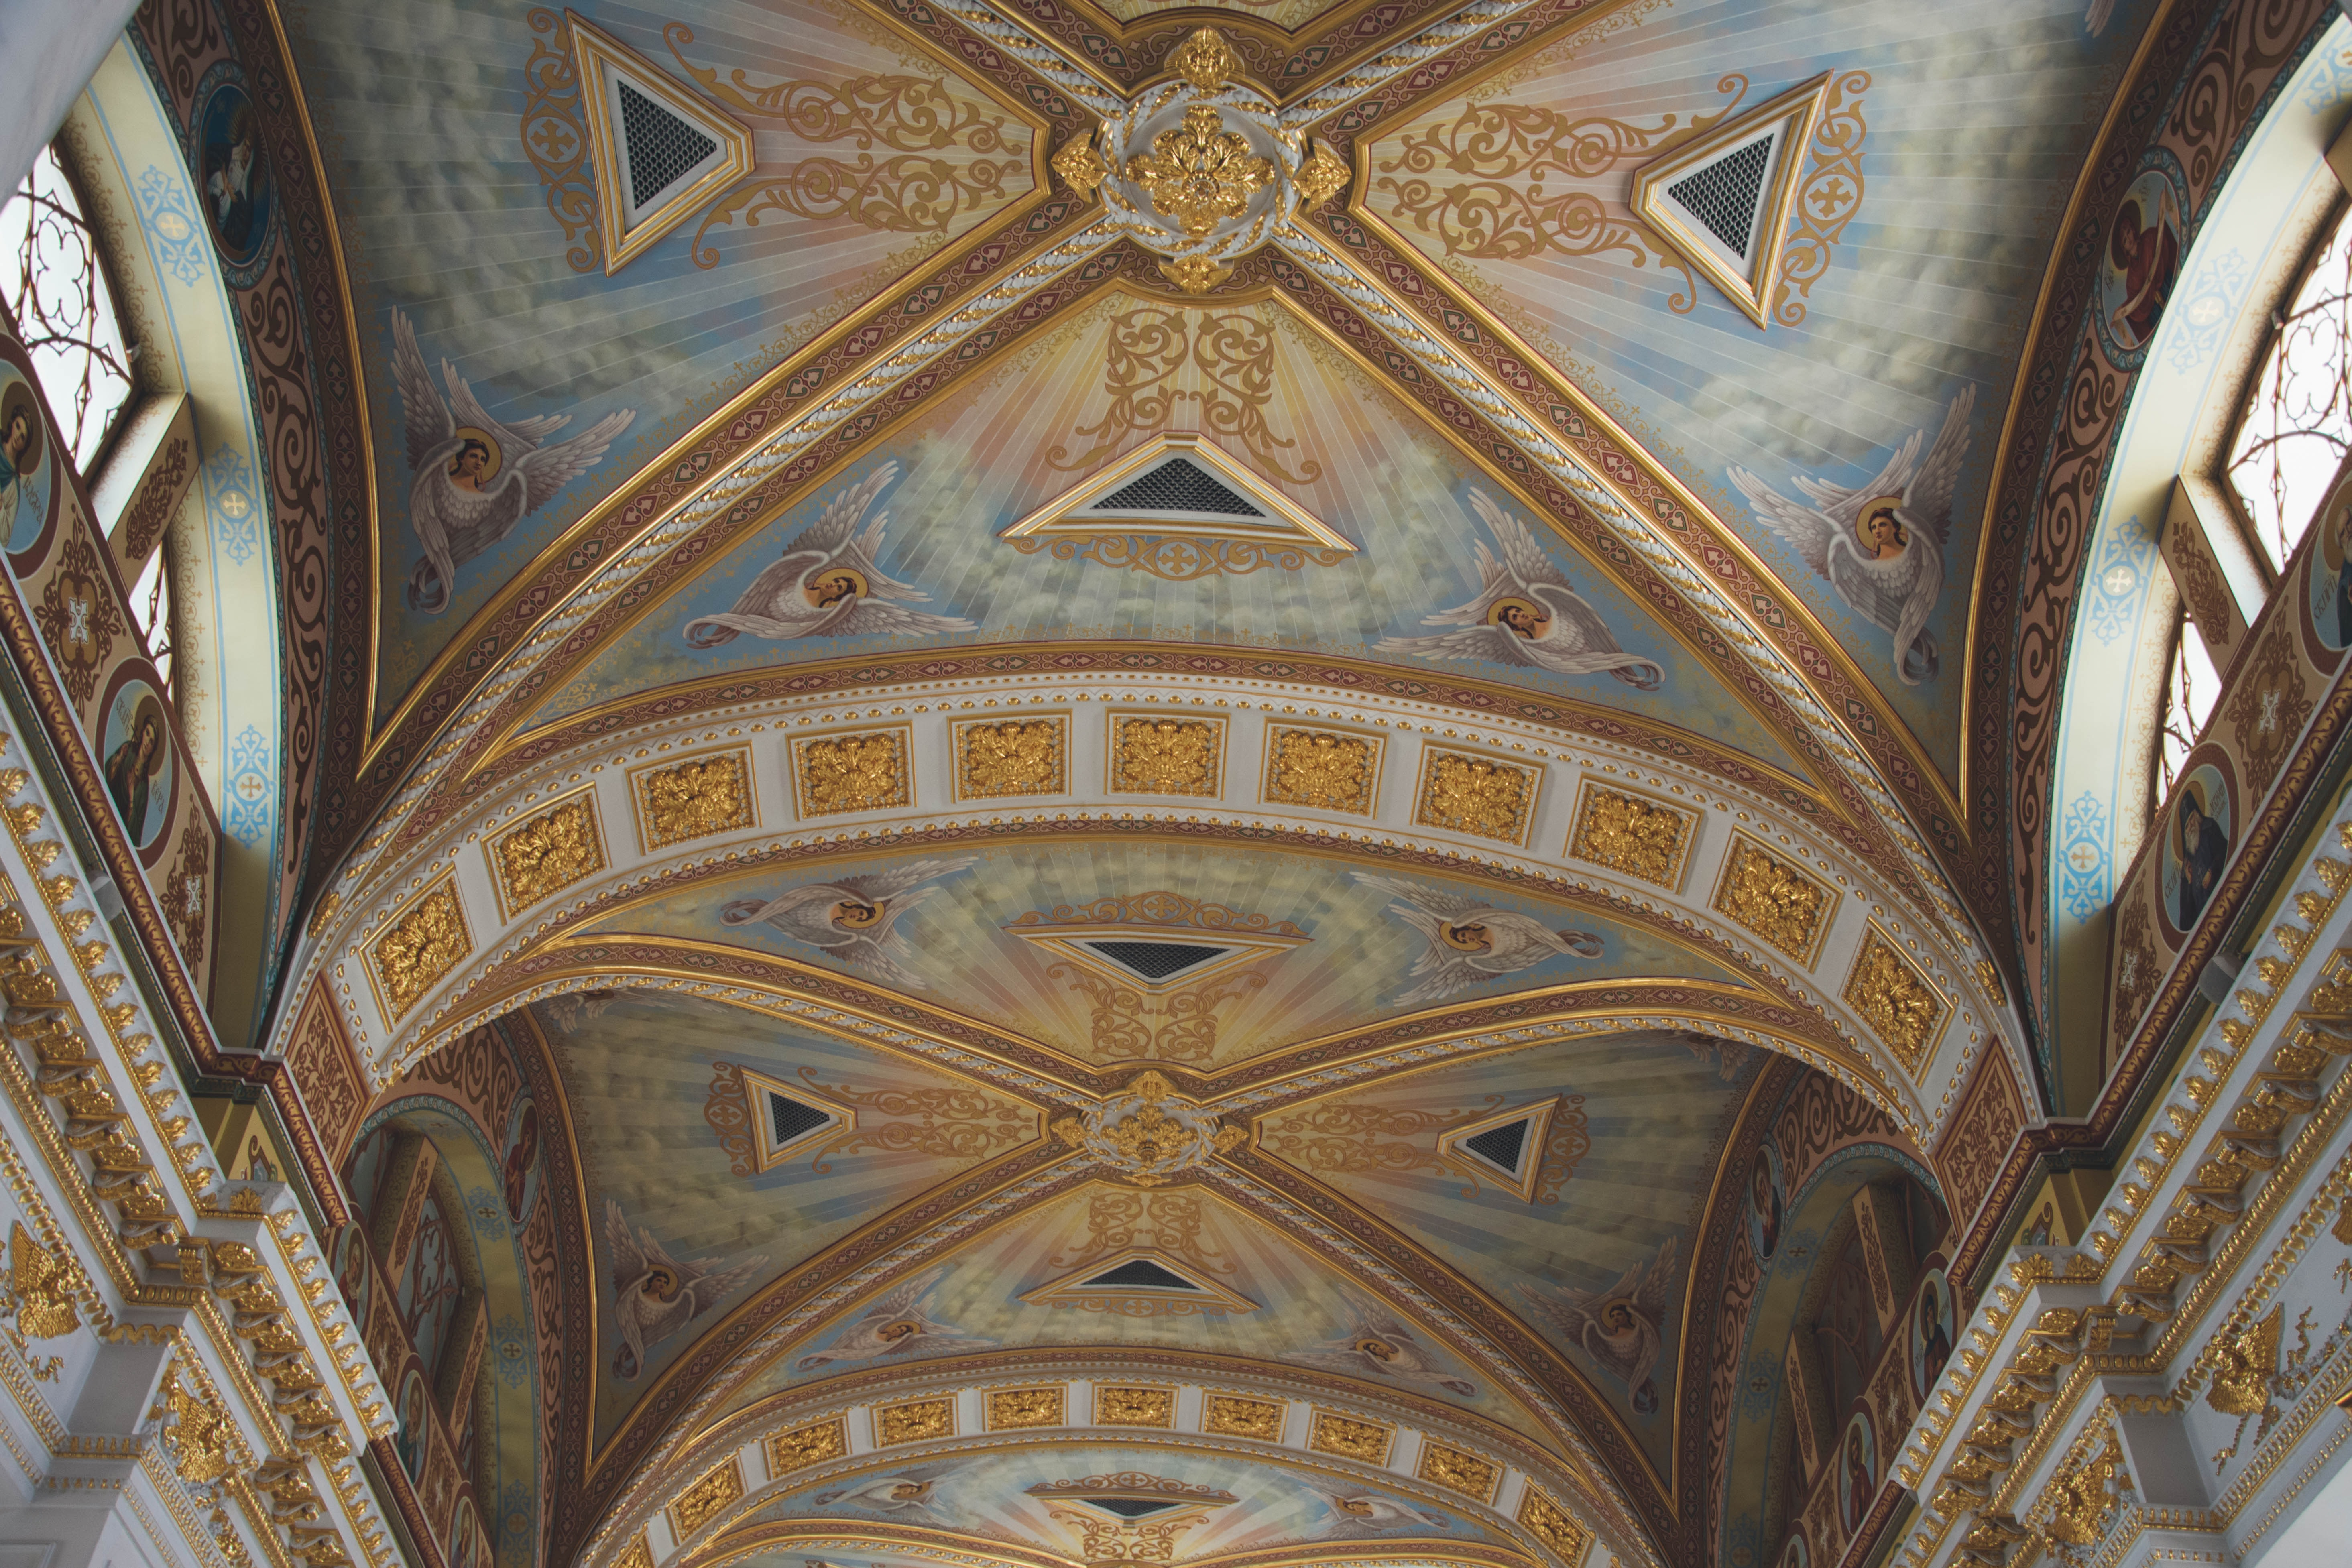 Cathedral church ceiling in Odessa with beautiful artwork and gold architecture